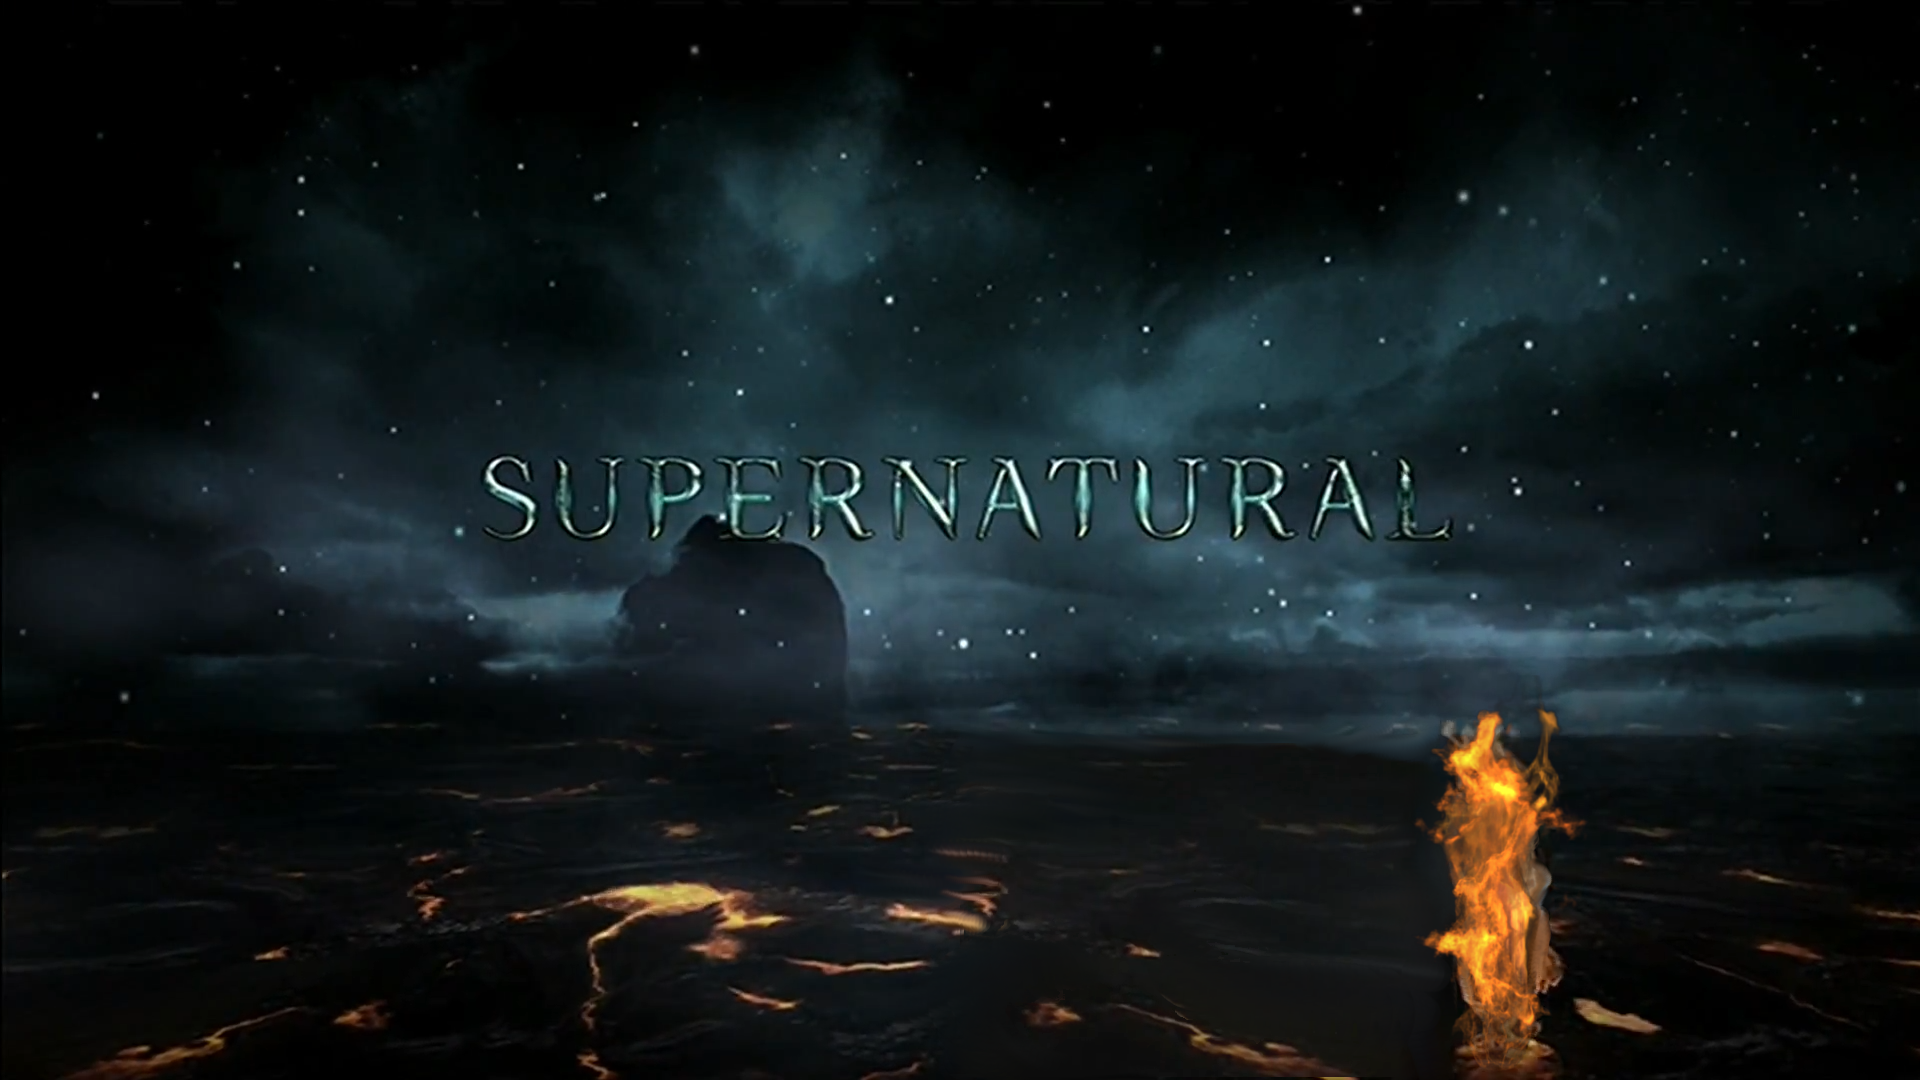 Supernatural season 8 wallpaper 2 by winchester7314